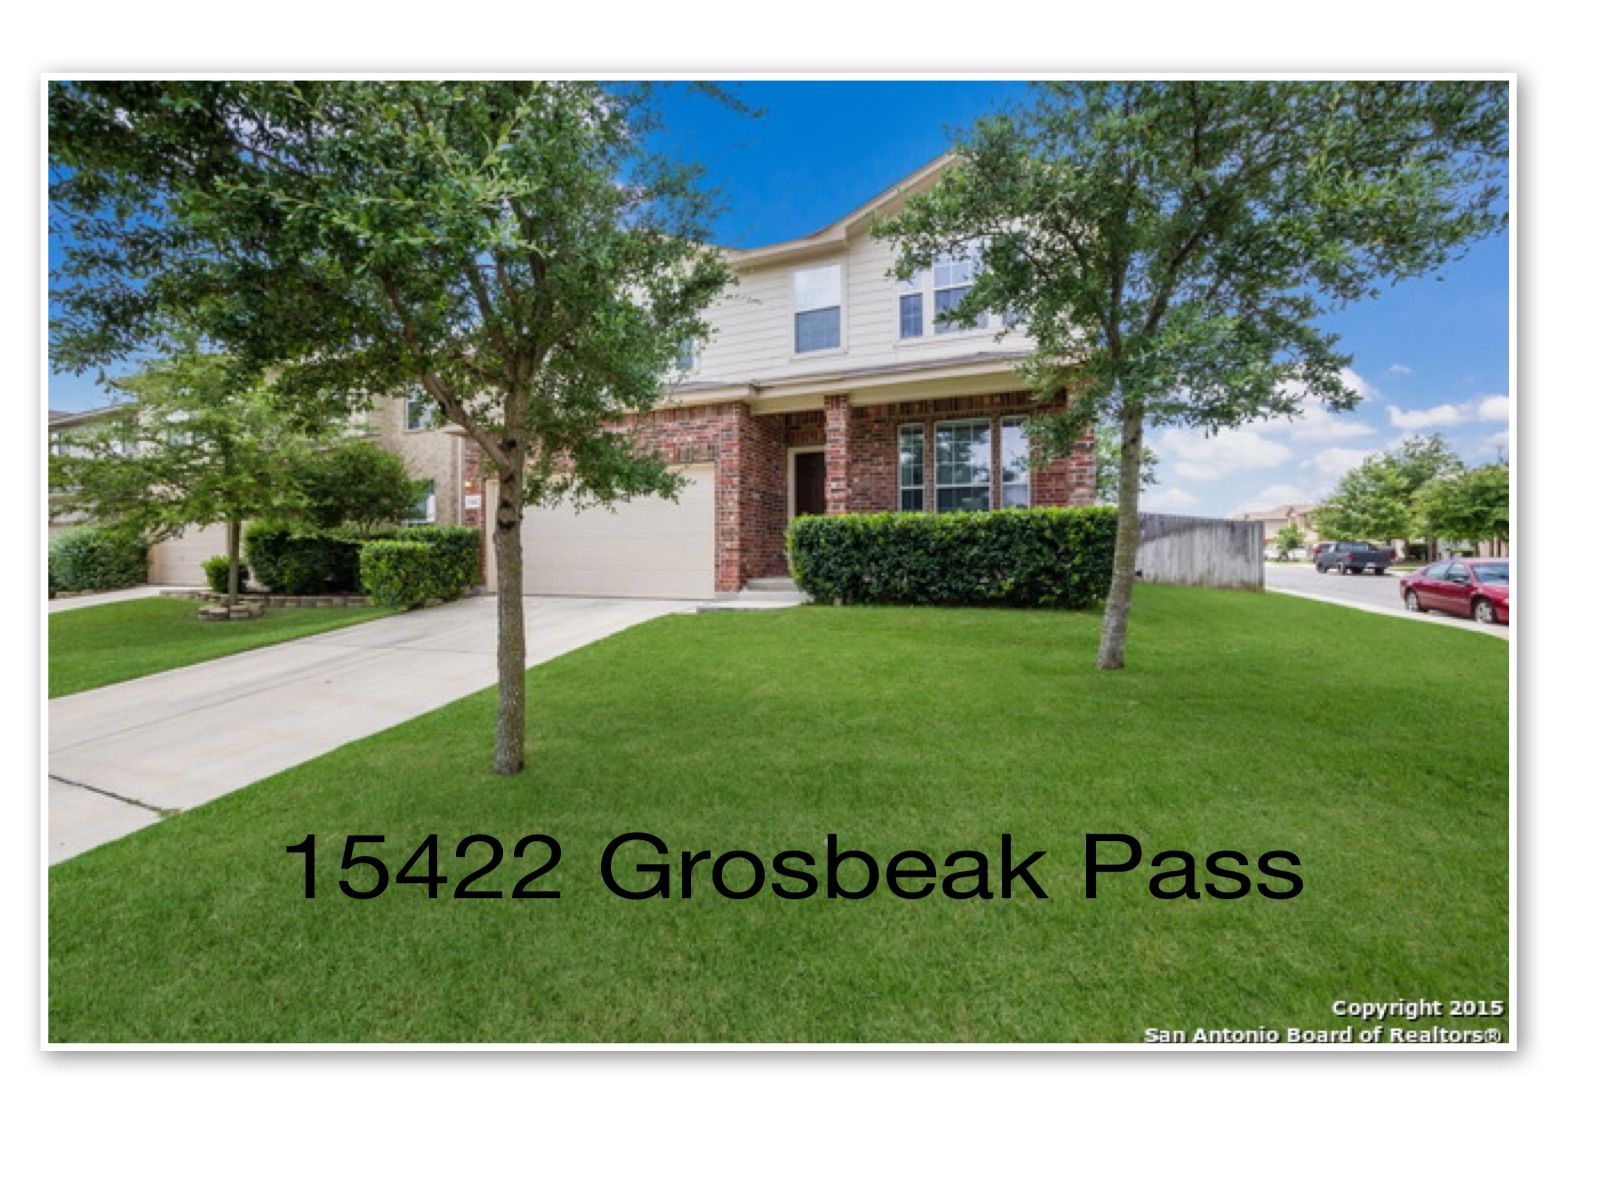 15422 Grosbeak Pass